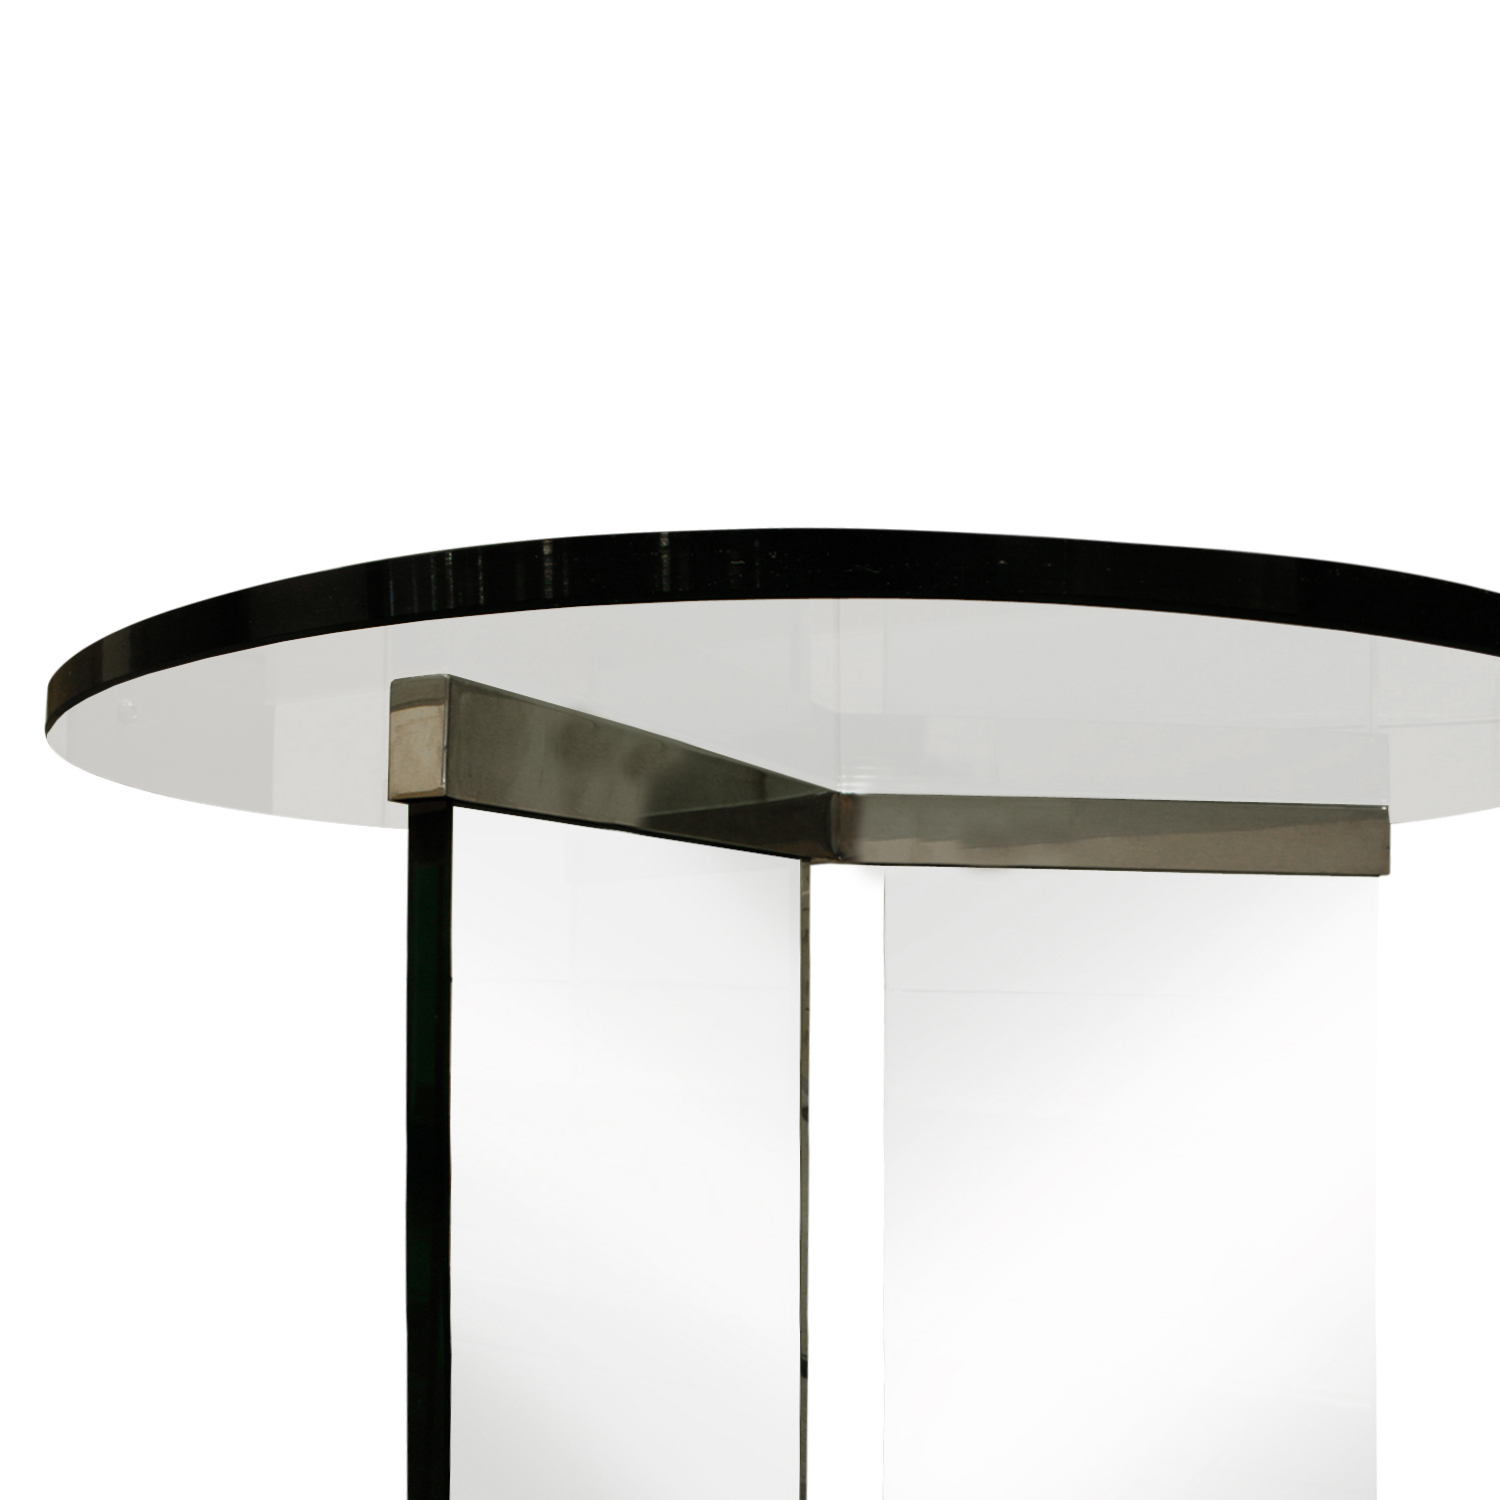 Pace 65 thickglass+chrome endtable183 dtl.JPG